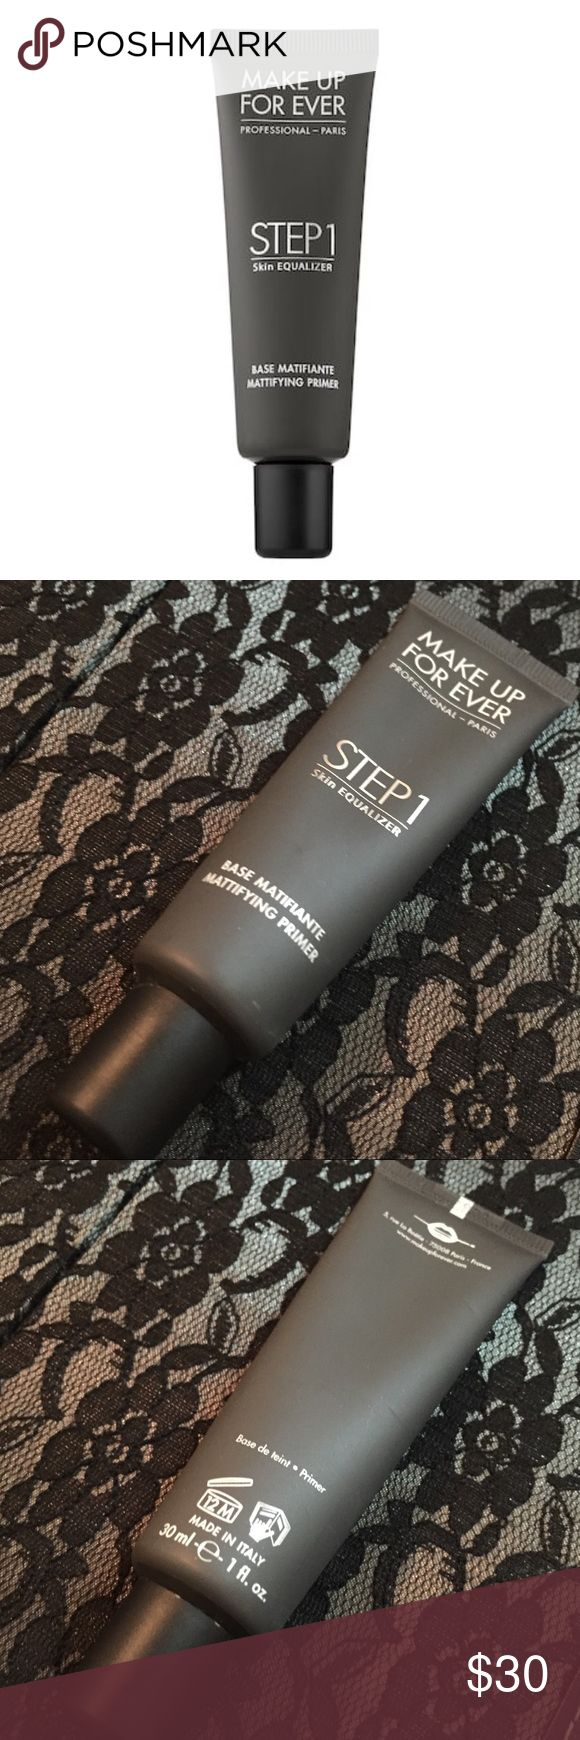 Makeup Forever Step 1 Equilizer primer Authentic. Bought from Sephora. A makeup primer that assists with balancing the skins texture & tone for a smother, and more even, and long- lasting makeup wear. Used twice. Basically brand New. Open to reasonable offers, just use the offer button✅ No lowballing🚫  ⭐️5 STAR SELLER & FAST SHIPPER📦💨         💕Shop with Confindence💕 Makeup Forever Makeup Face Primer